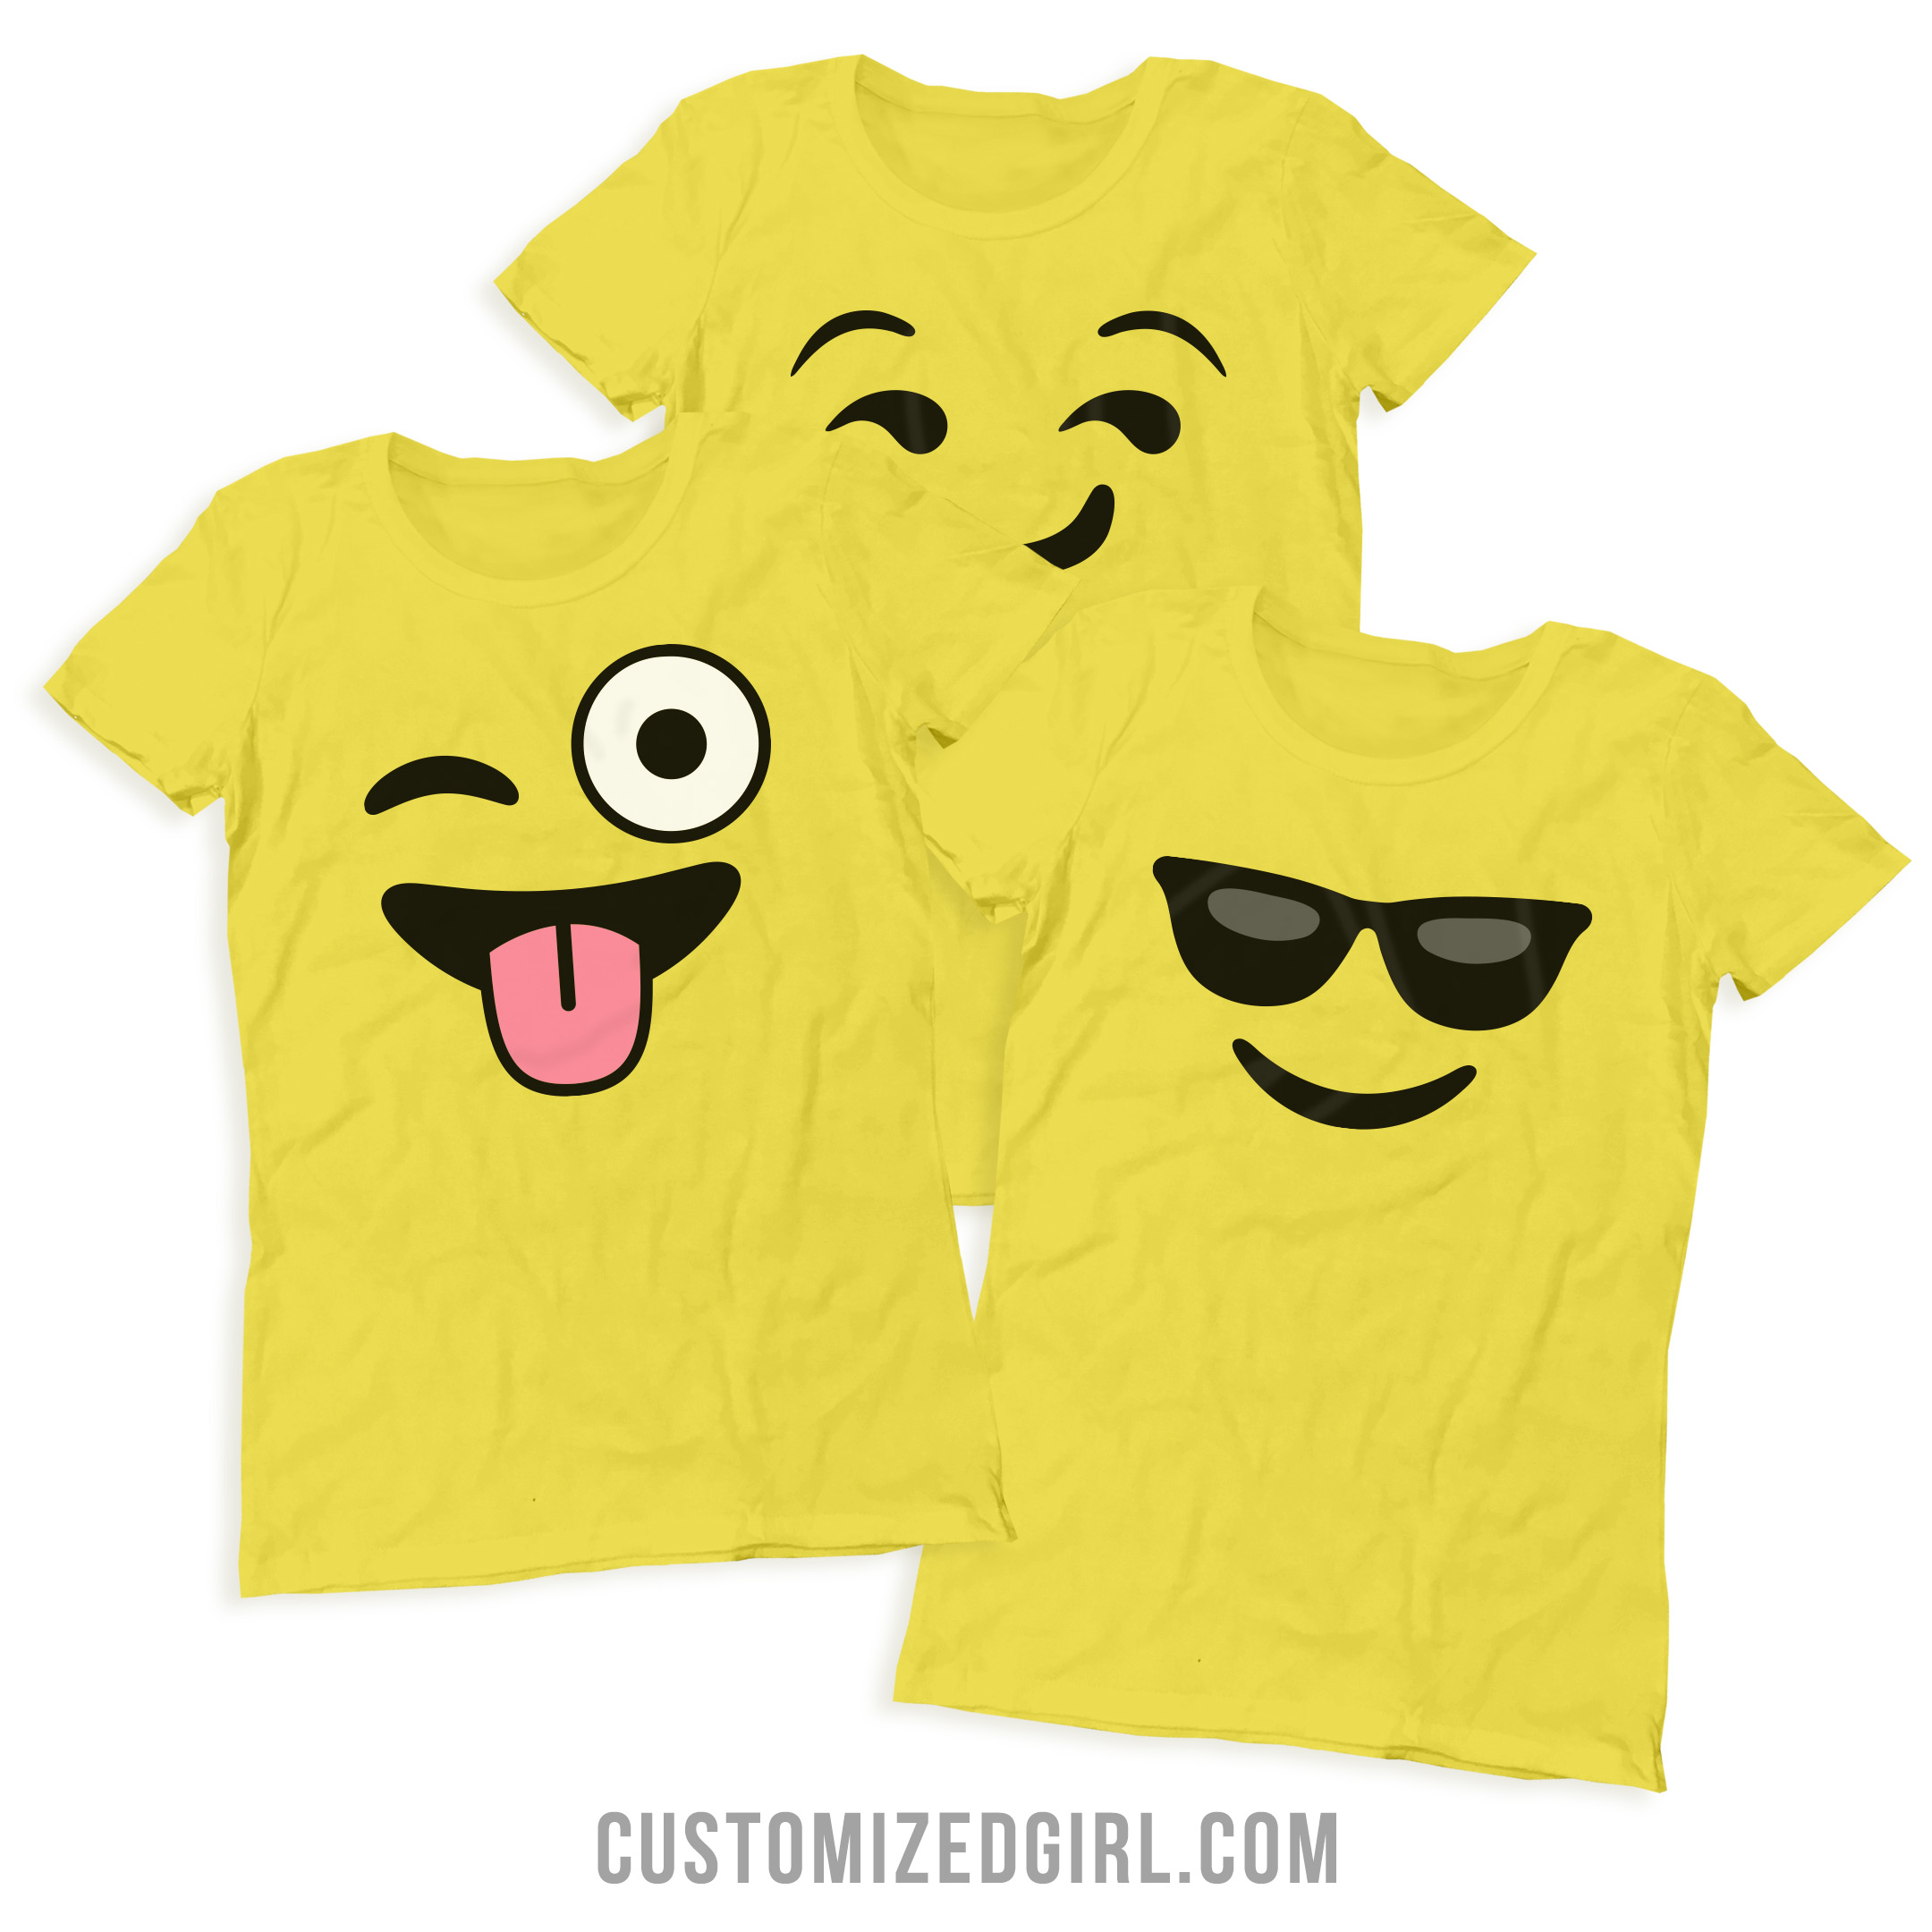 3091e099 Custom Shirts Archives - Page 4 of 19 - CustomizedGirl Blog